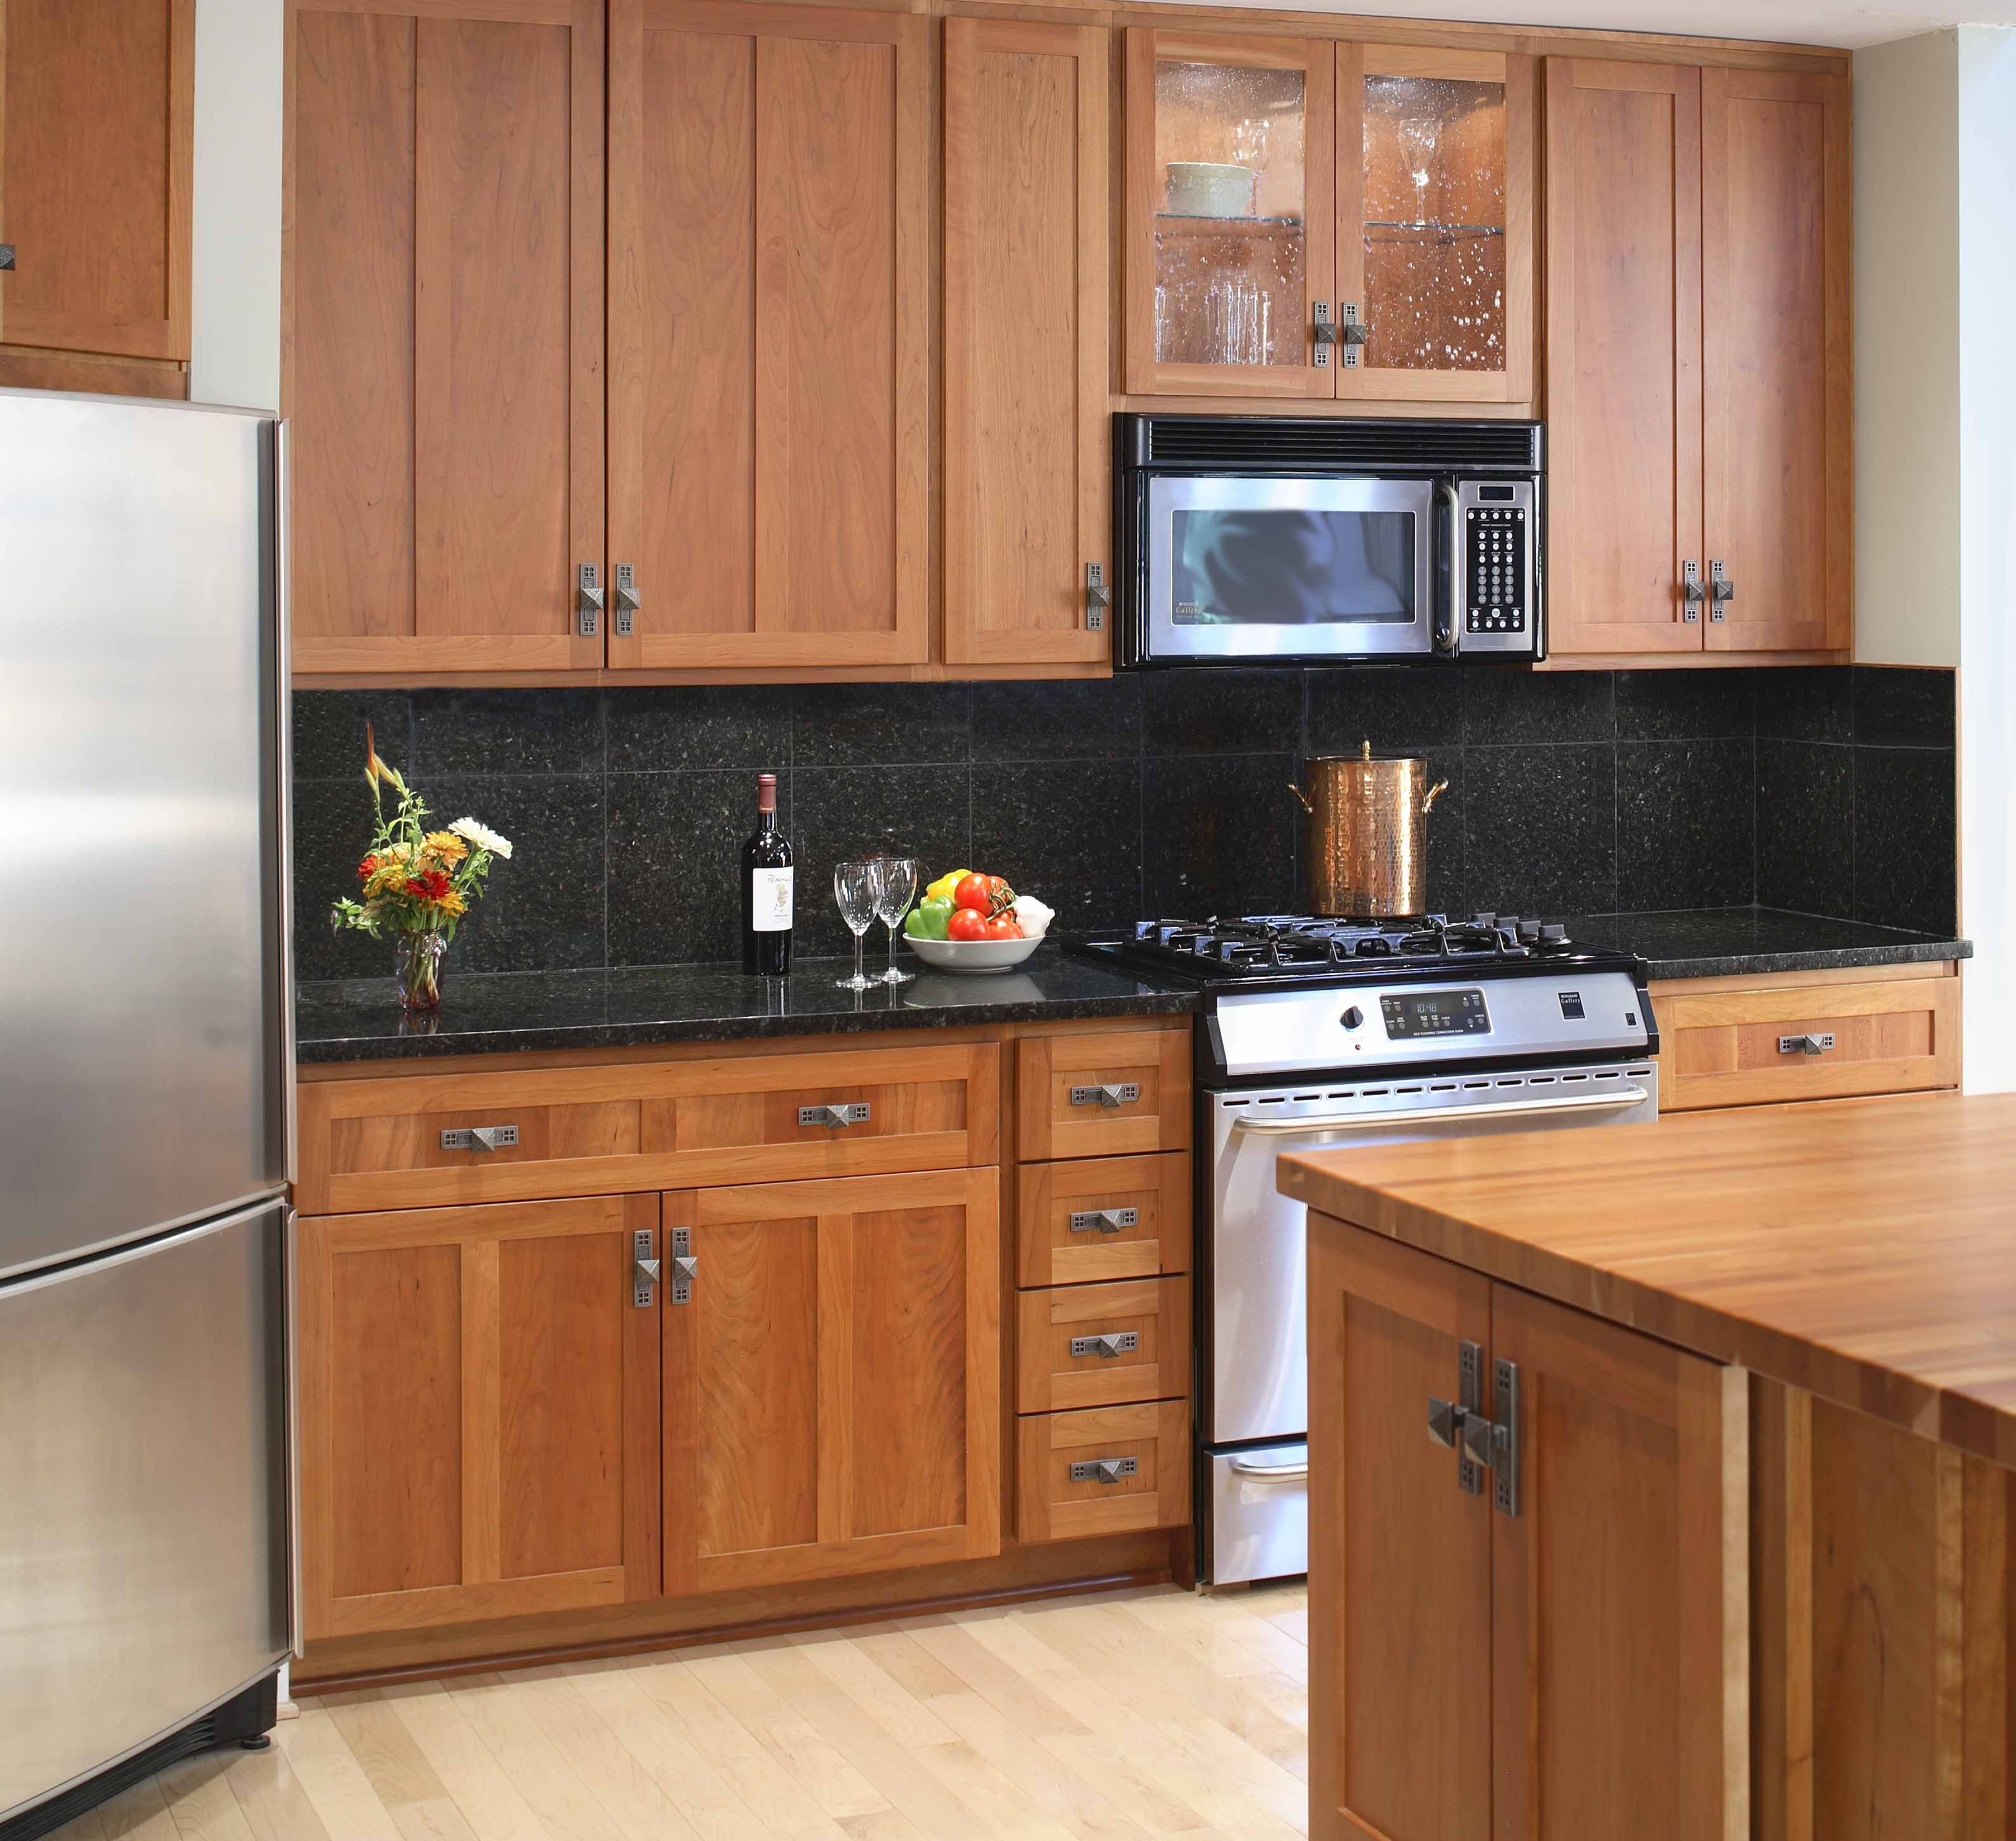 Cabinets Kitchen Colors For Dark Wood Captivating With Oak And Black Countertops Su Cherry Cabinets Kitchen Black Granite Countertops Trendy Kitchen Backsplash